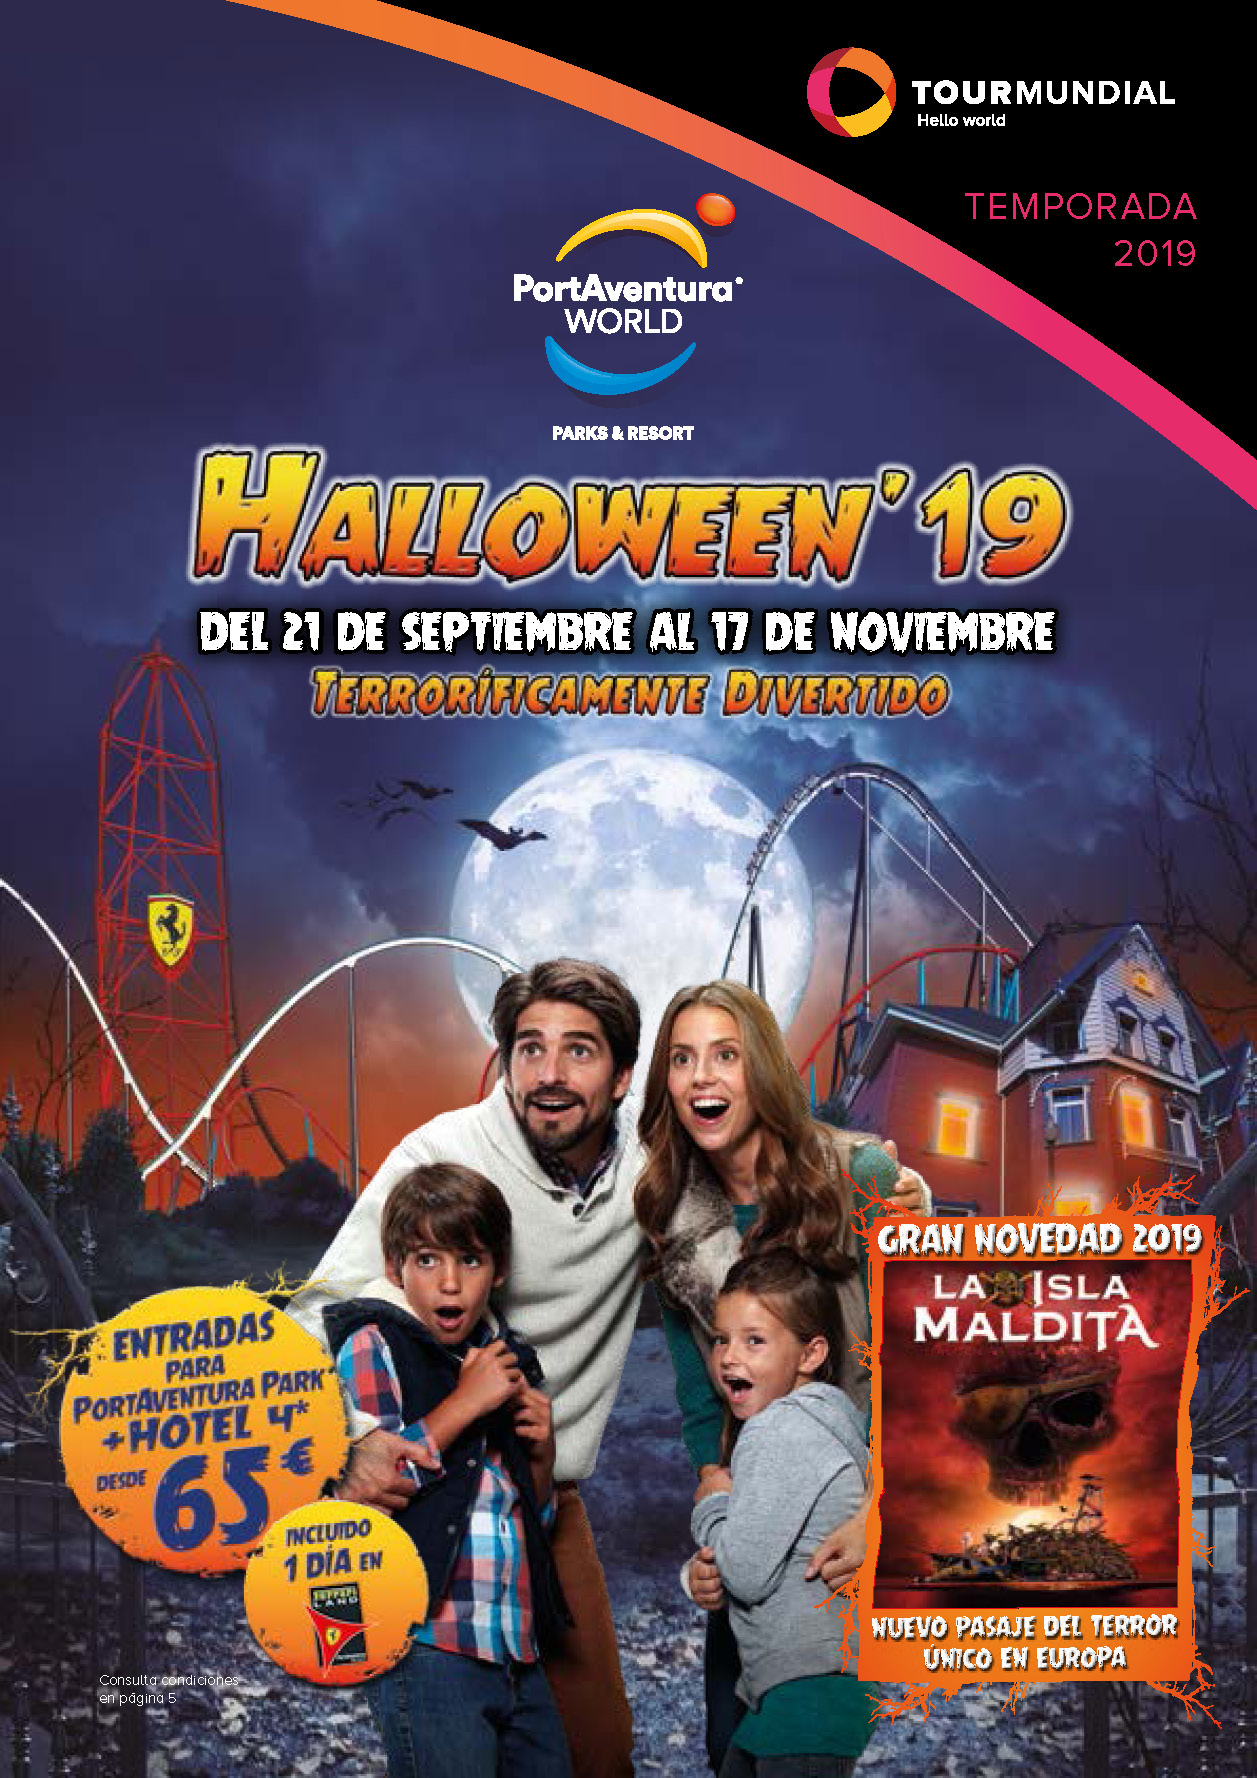 Catalogo Tourmundial Port Aventura World Halloween 2019